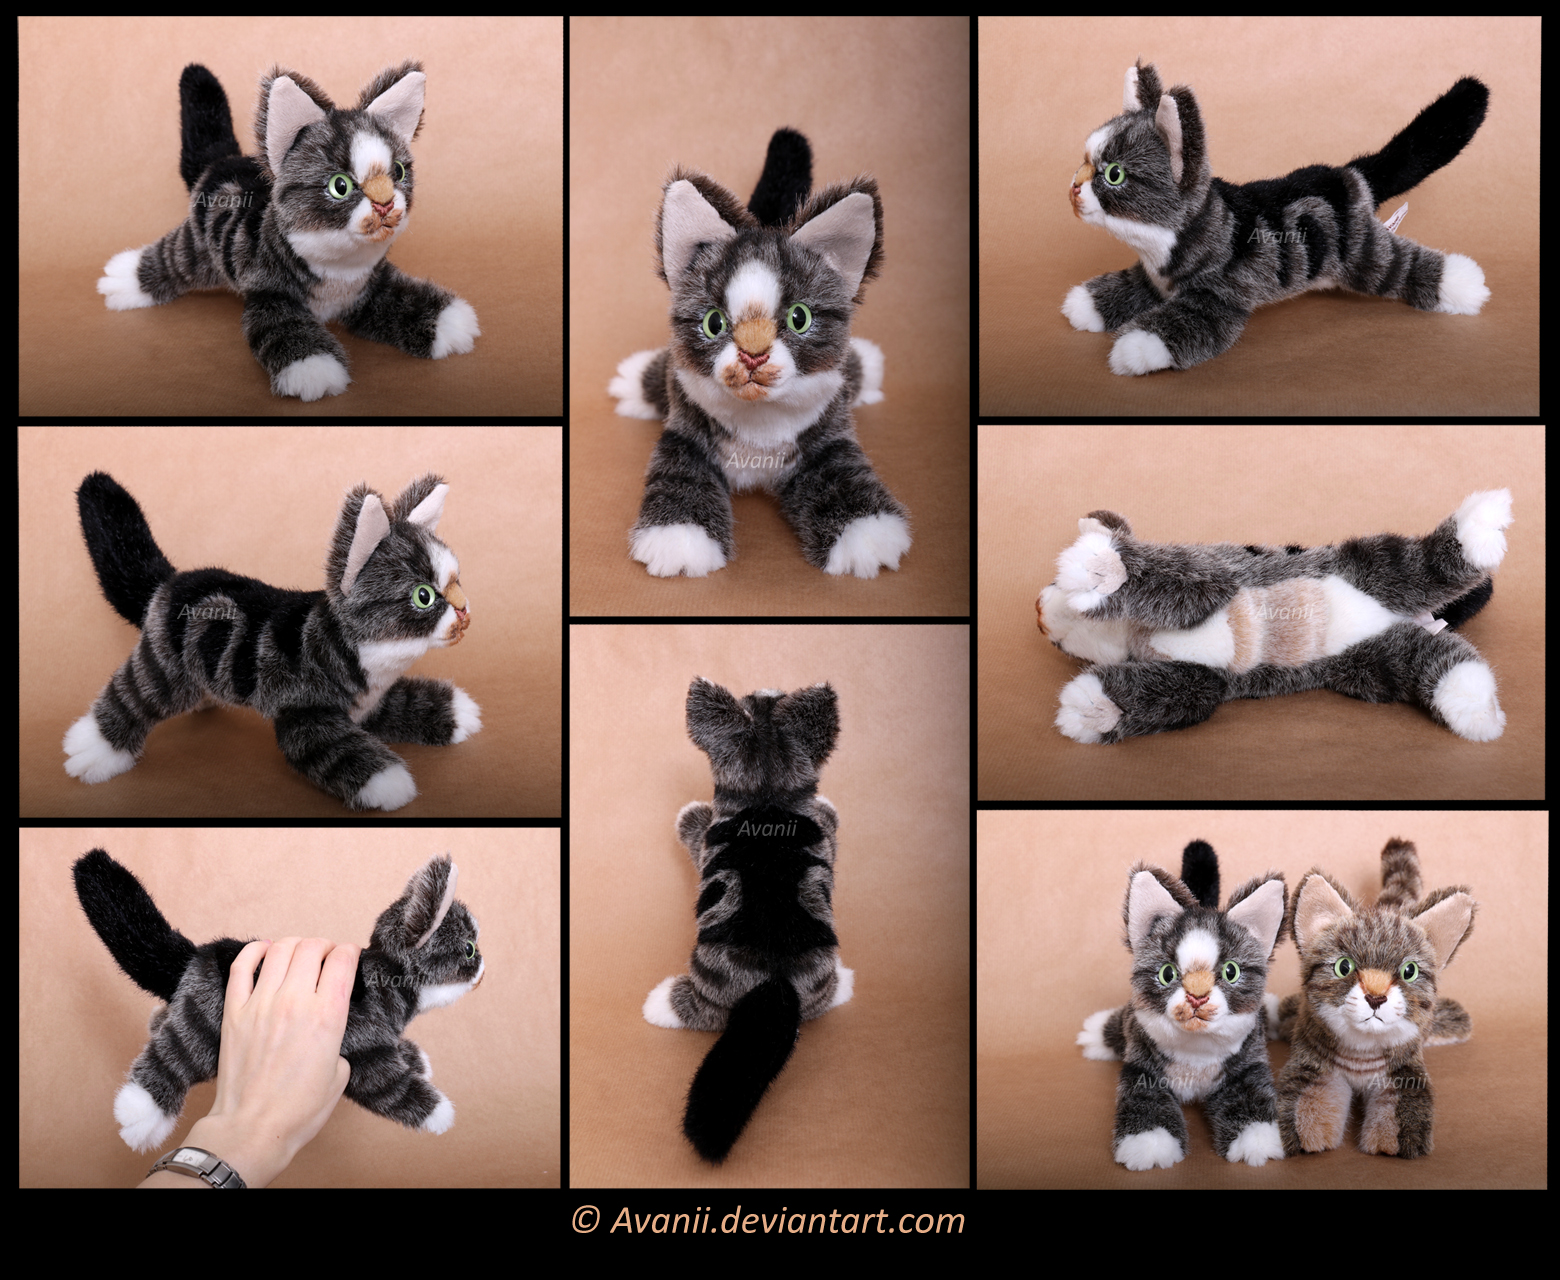 Plushie Commission: Miepie the Cat by Avanii